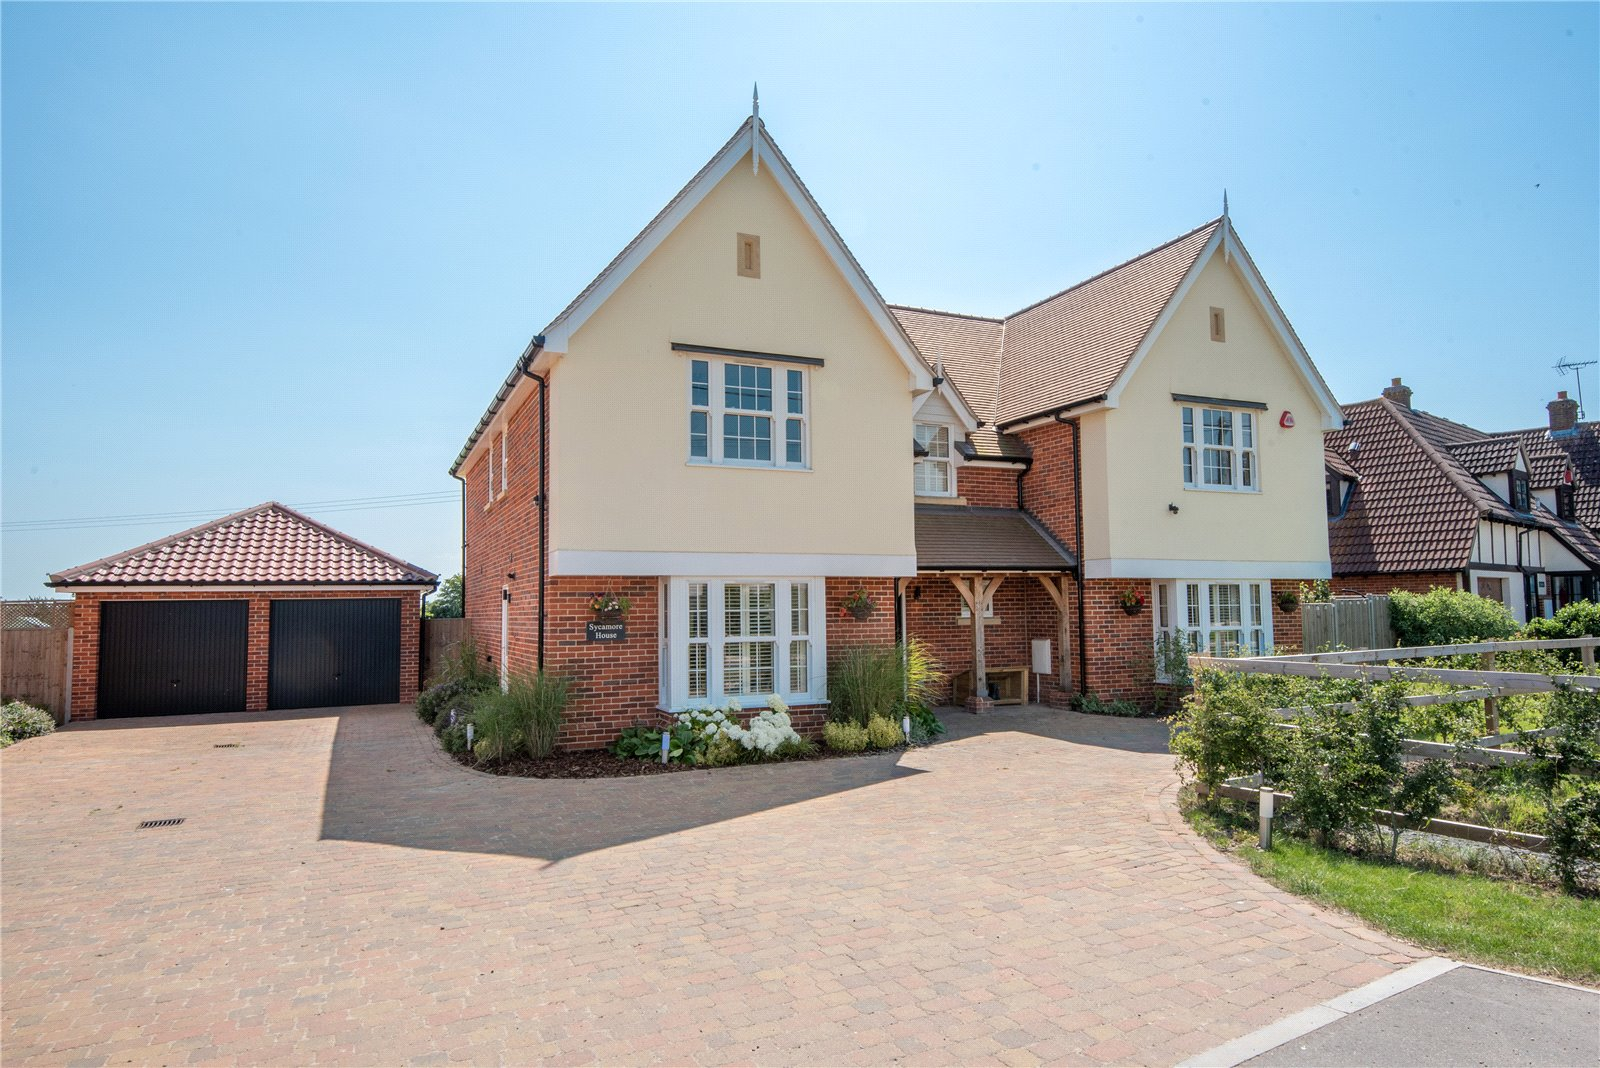 5 bed house for sale in Tendring Road, Little Bentley, Colchester 36